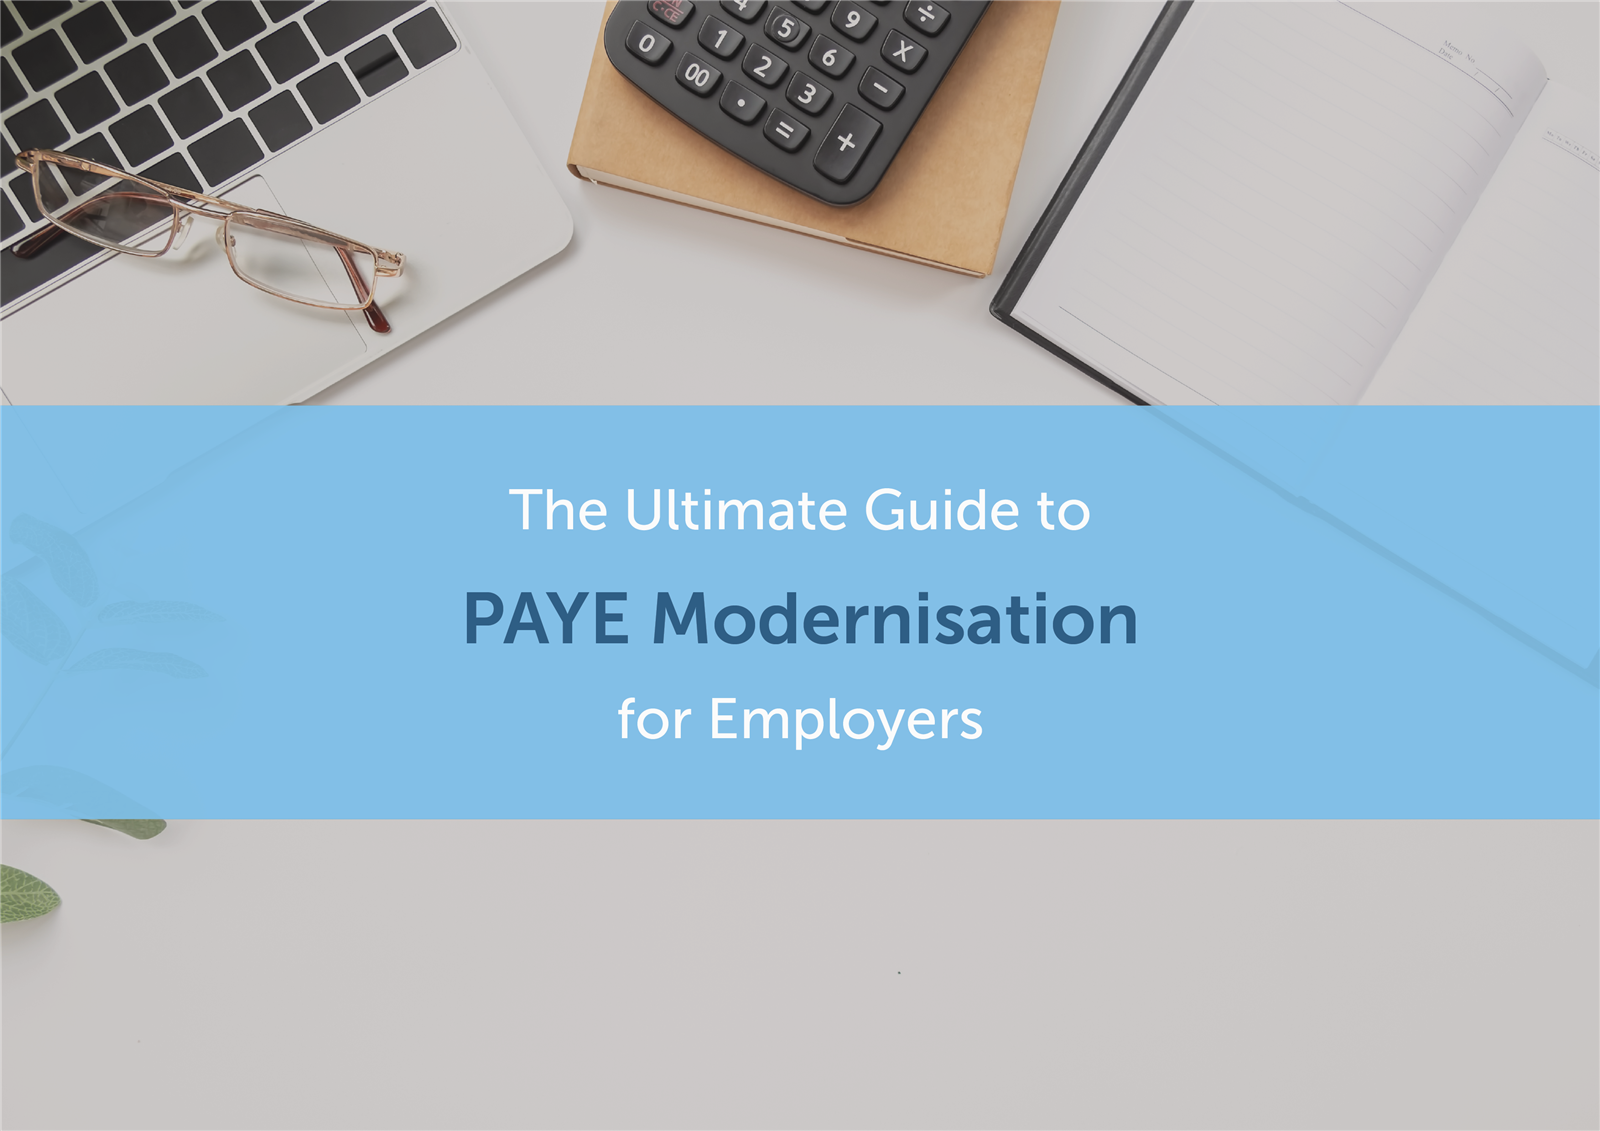 What is PAYE modernisation